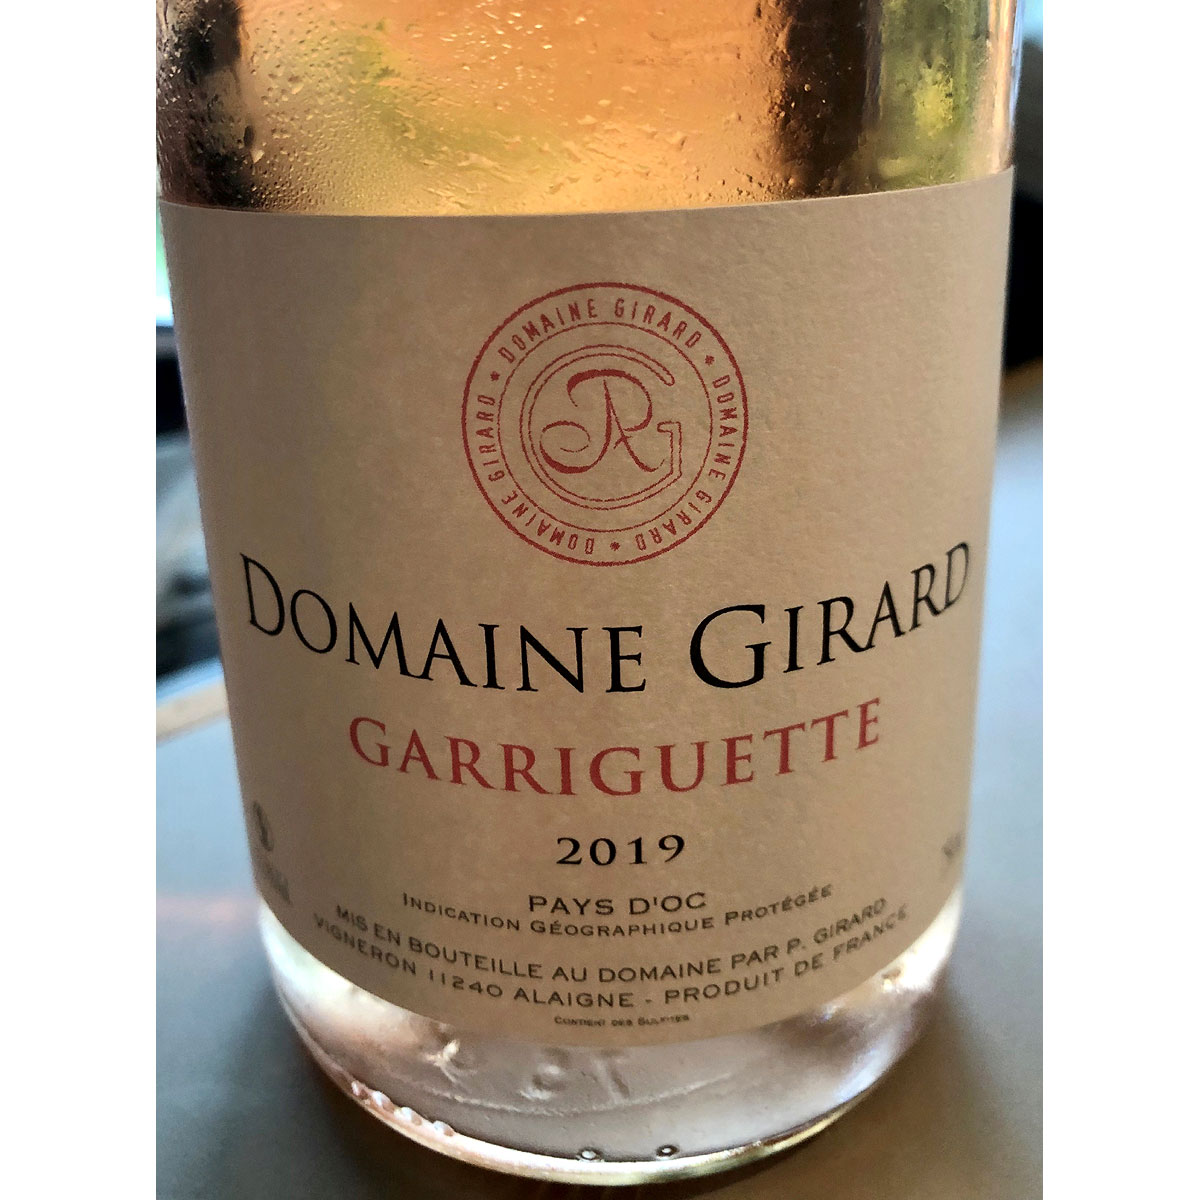 IGP Pays d'Oc: Domaine Girard 'Garriguette' Rosé 2019 - Lifestyle